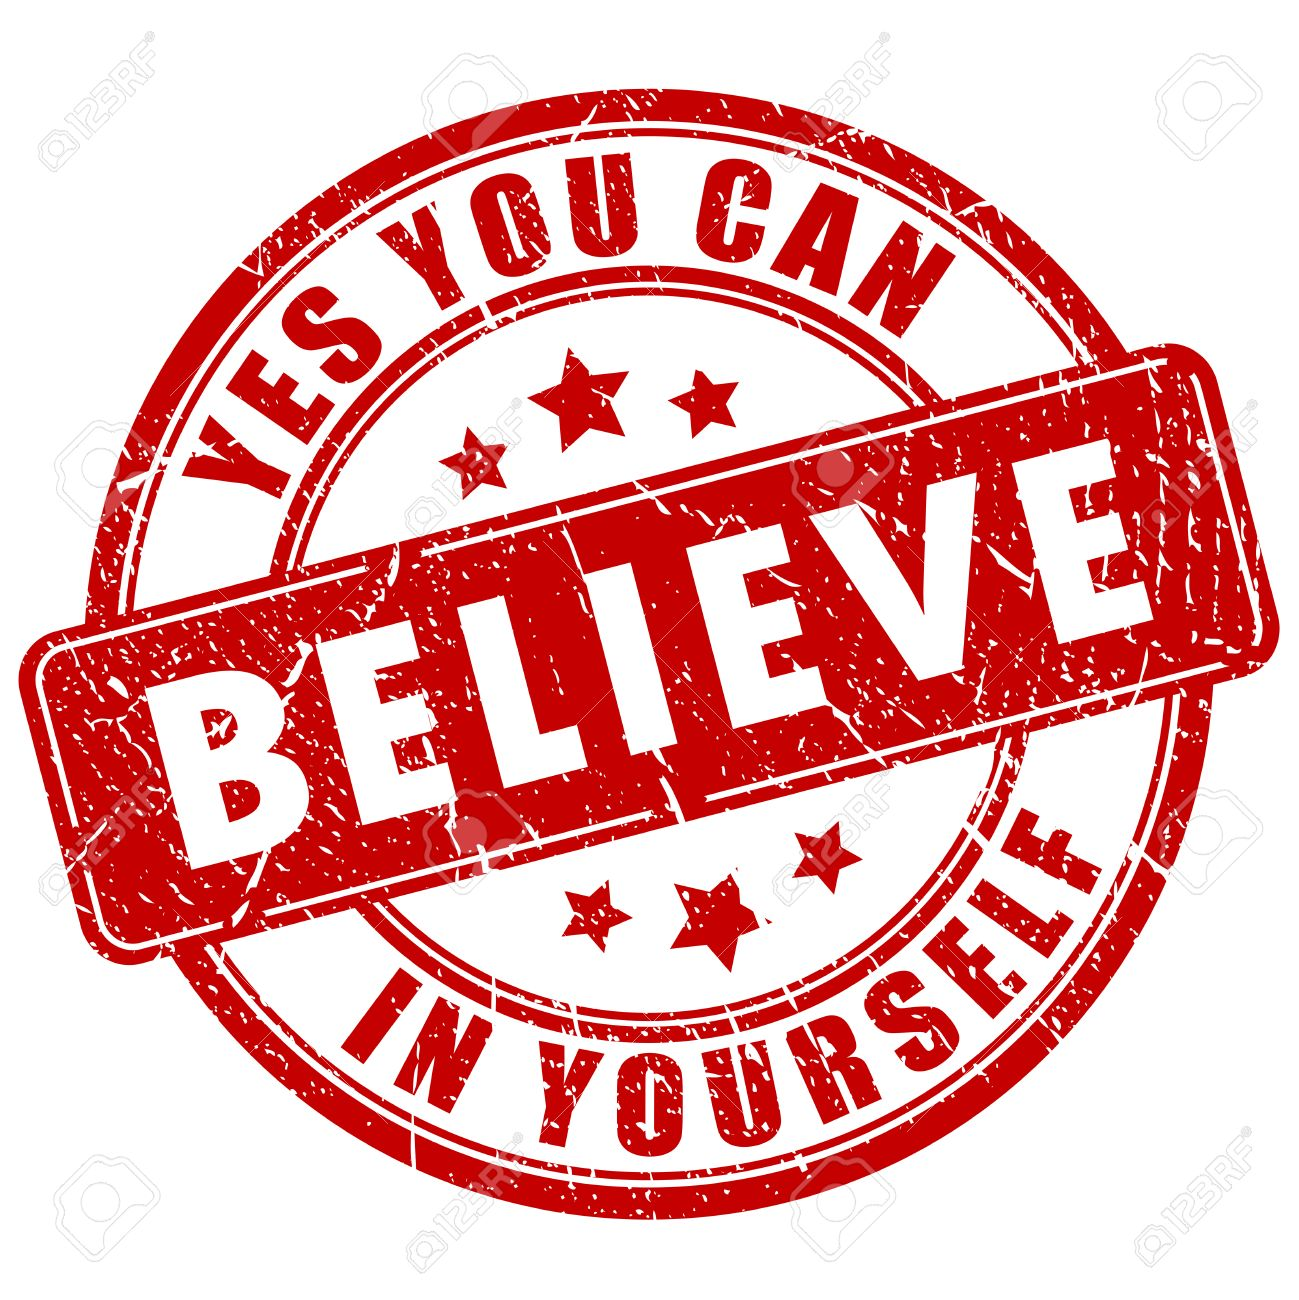 Believe In Yourself Motivational Stamp Royalty Free Cliparts